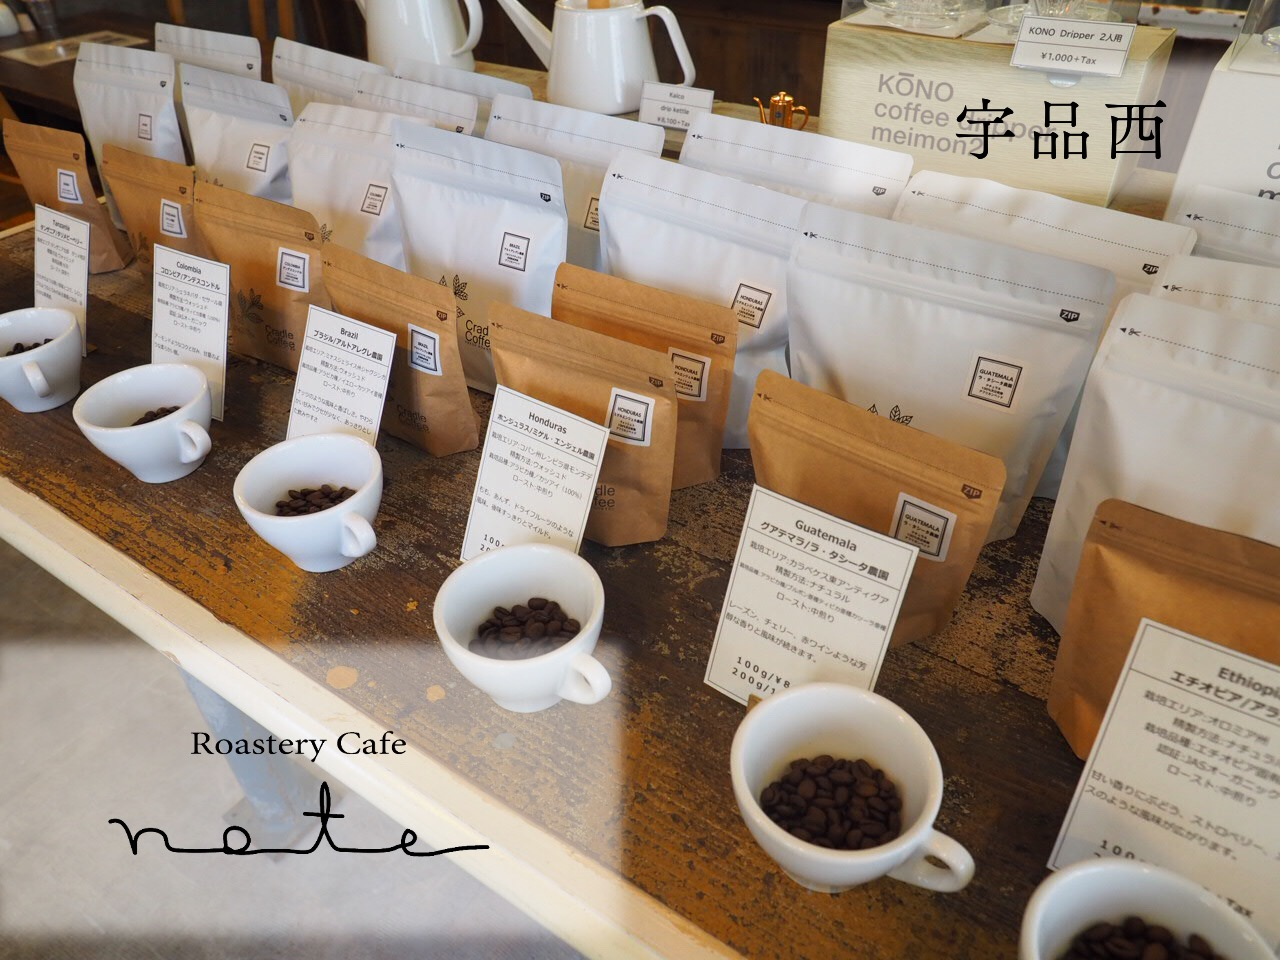 Roastery cafe note